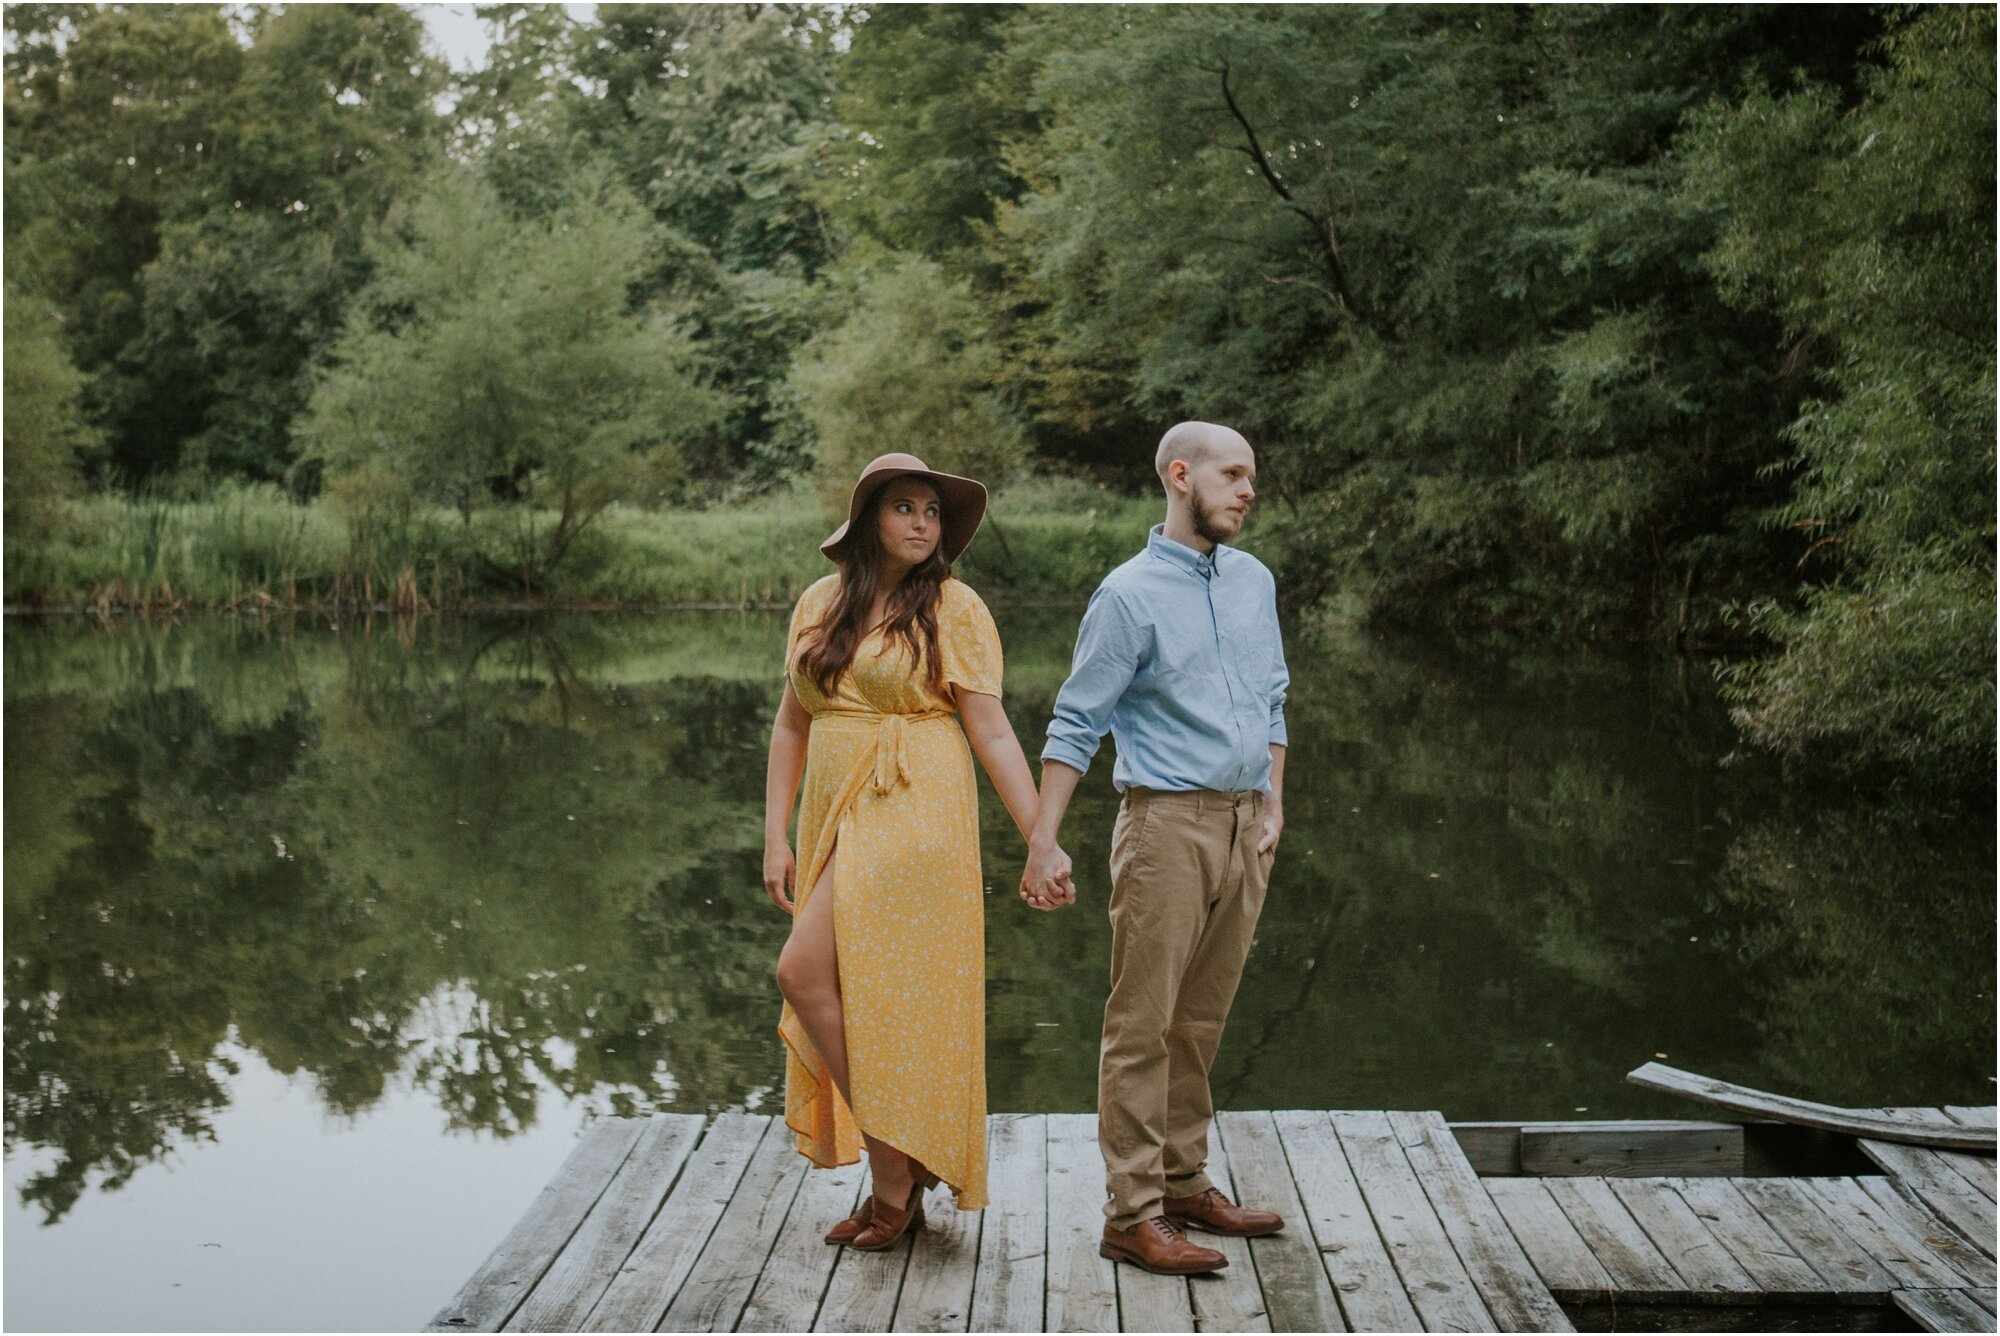 kingsport-tennessee-backyard-pond-bays-mountain-summer-engagement-session_0043.jpg